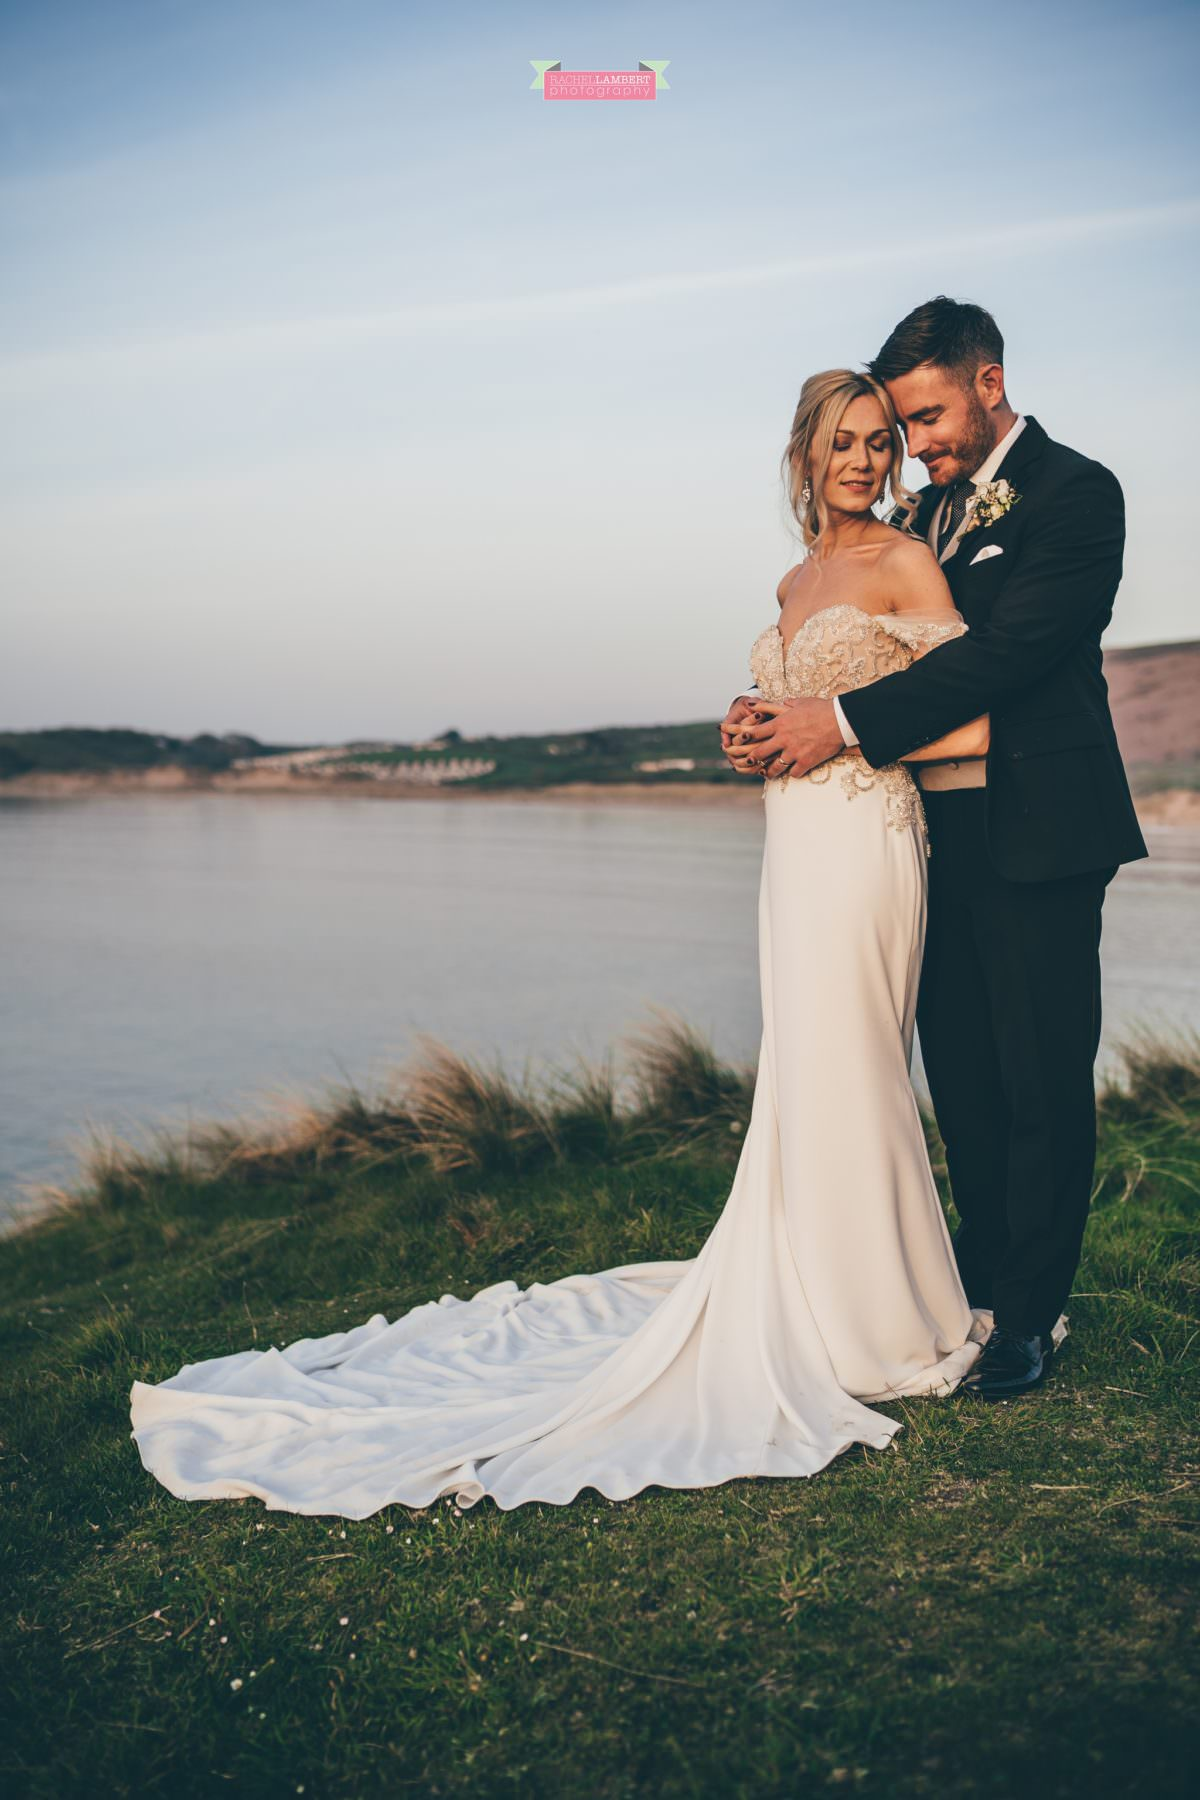 Fairyhill cardiff wedding photographer broughton bay bride and groom pronovious bridal gown